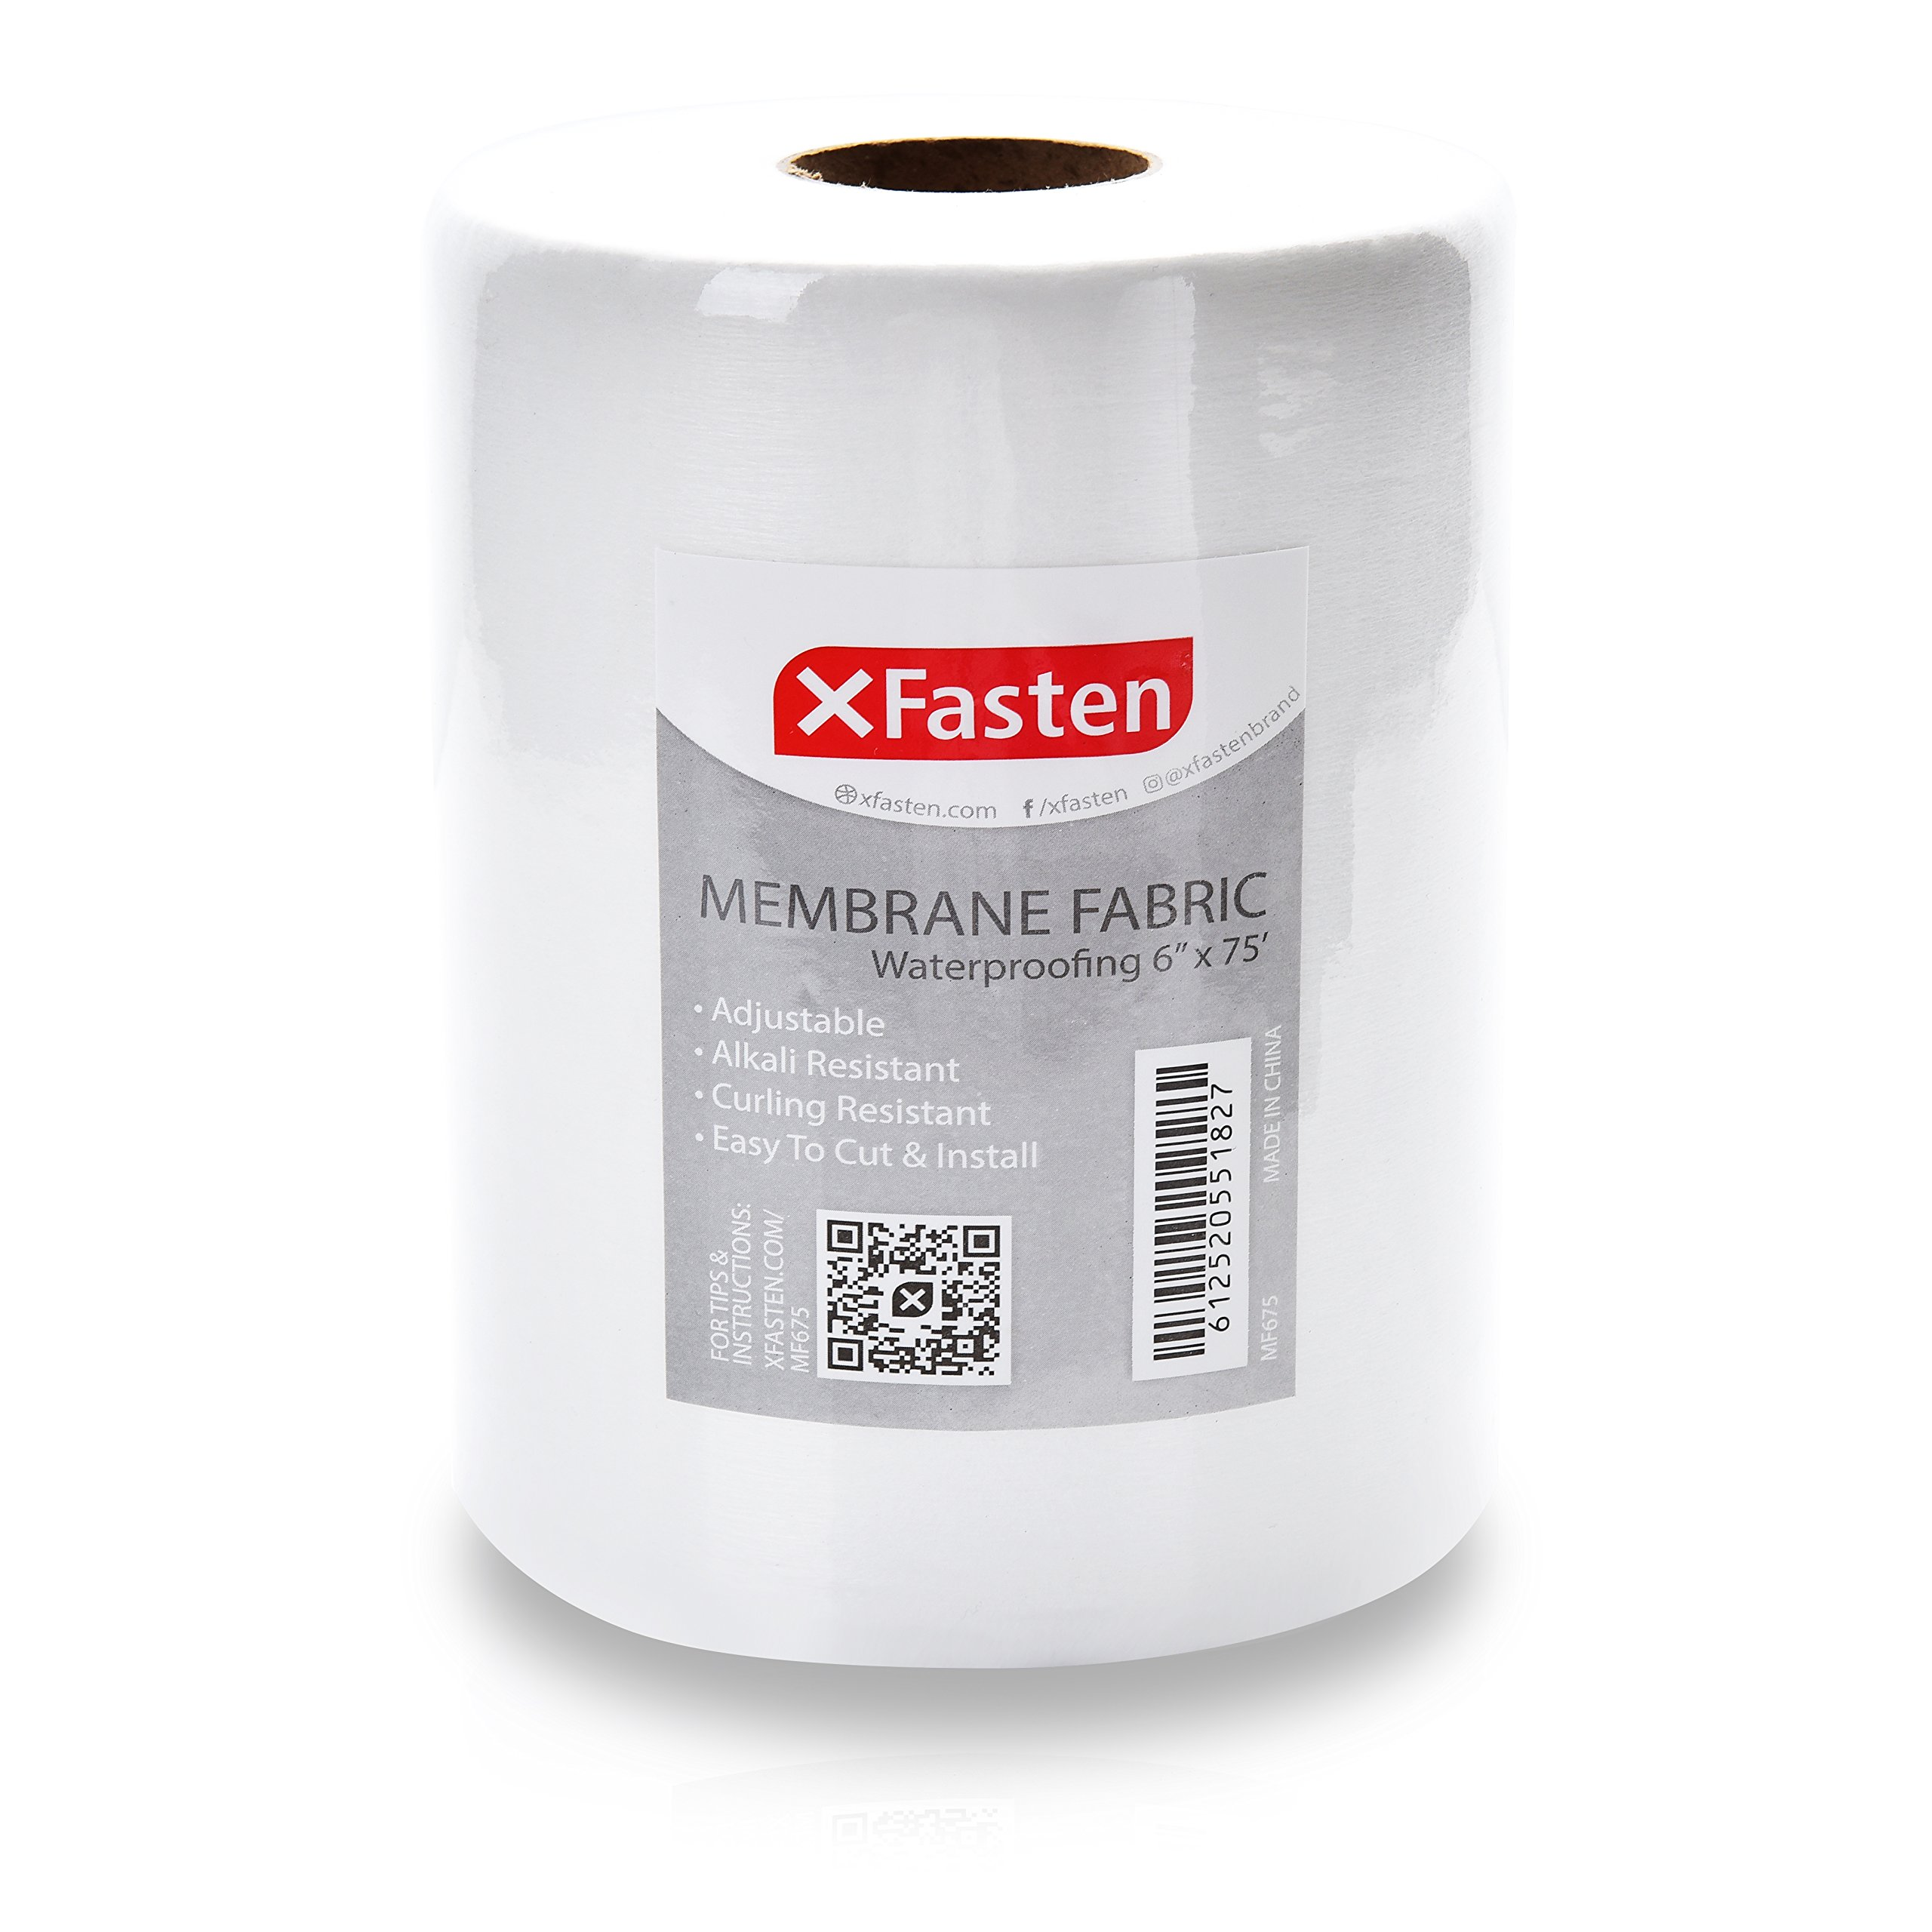 XFasten Fiberglass Waterproofing Anti-Fracture Membrane Fabric Tape, 6-Inch x 75-Foot, Water Barrier Mesh Tape for Shower Walls and Tiles